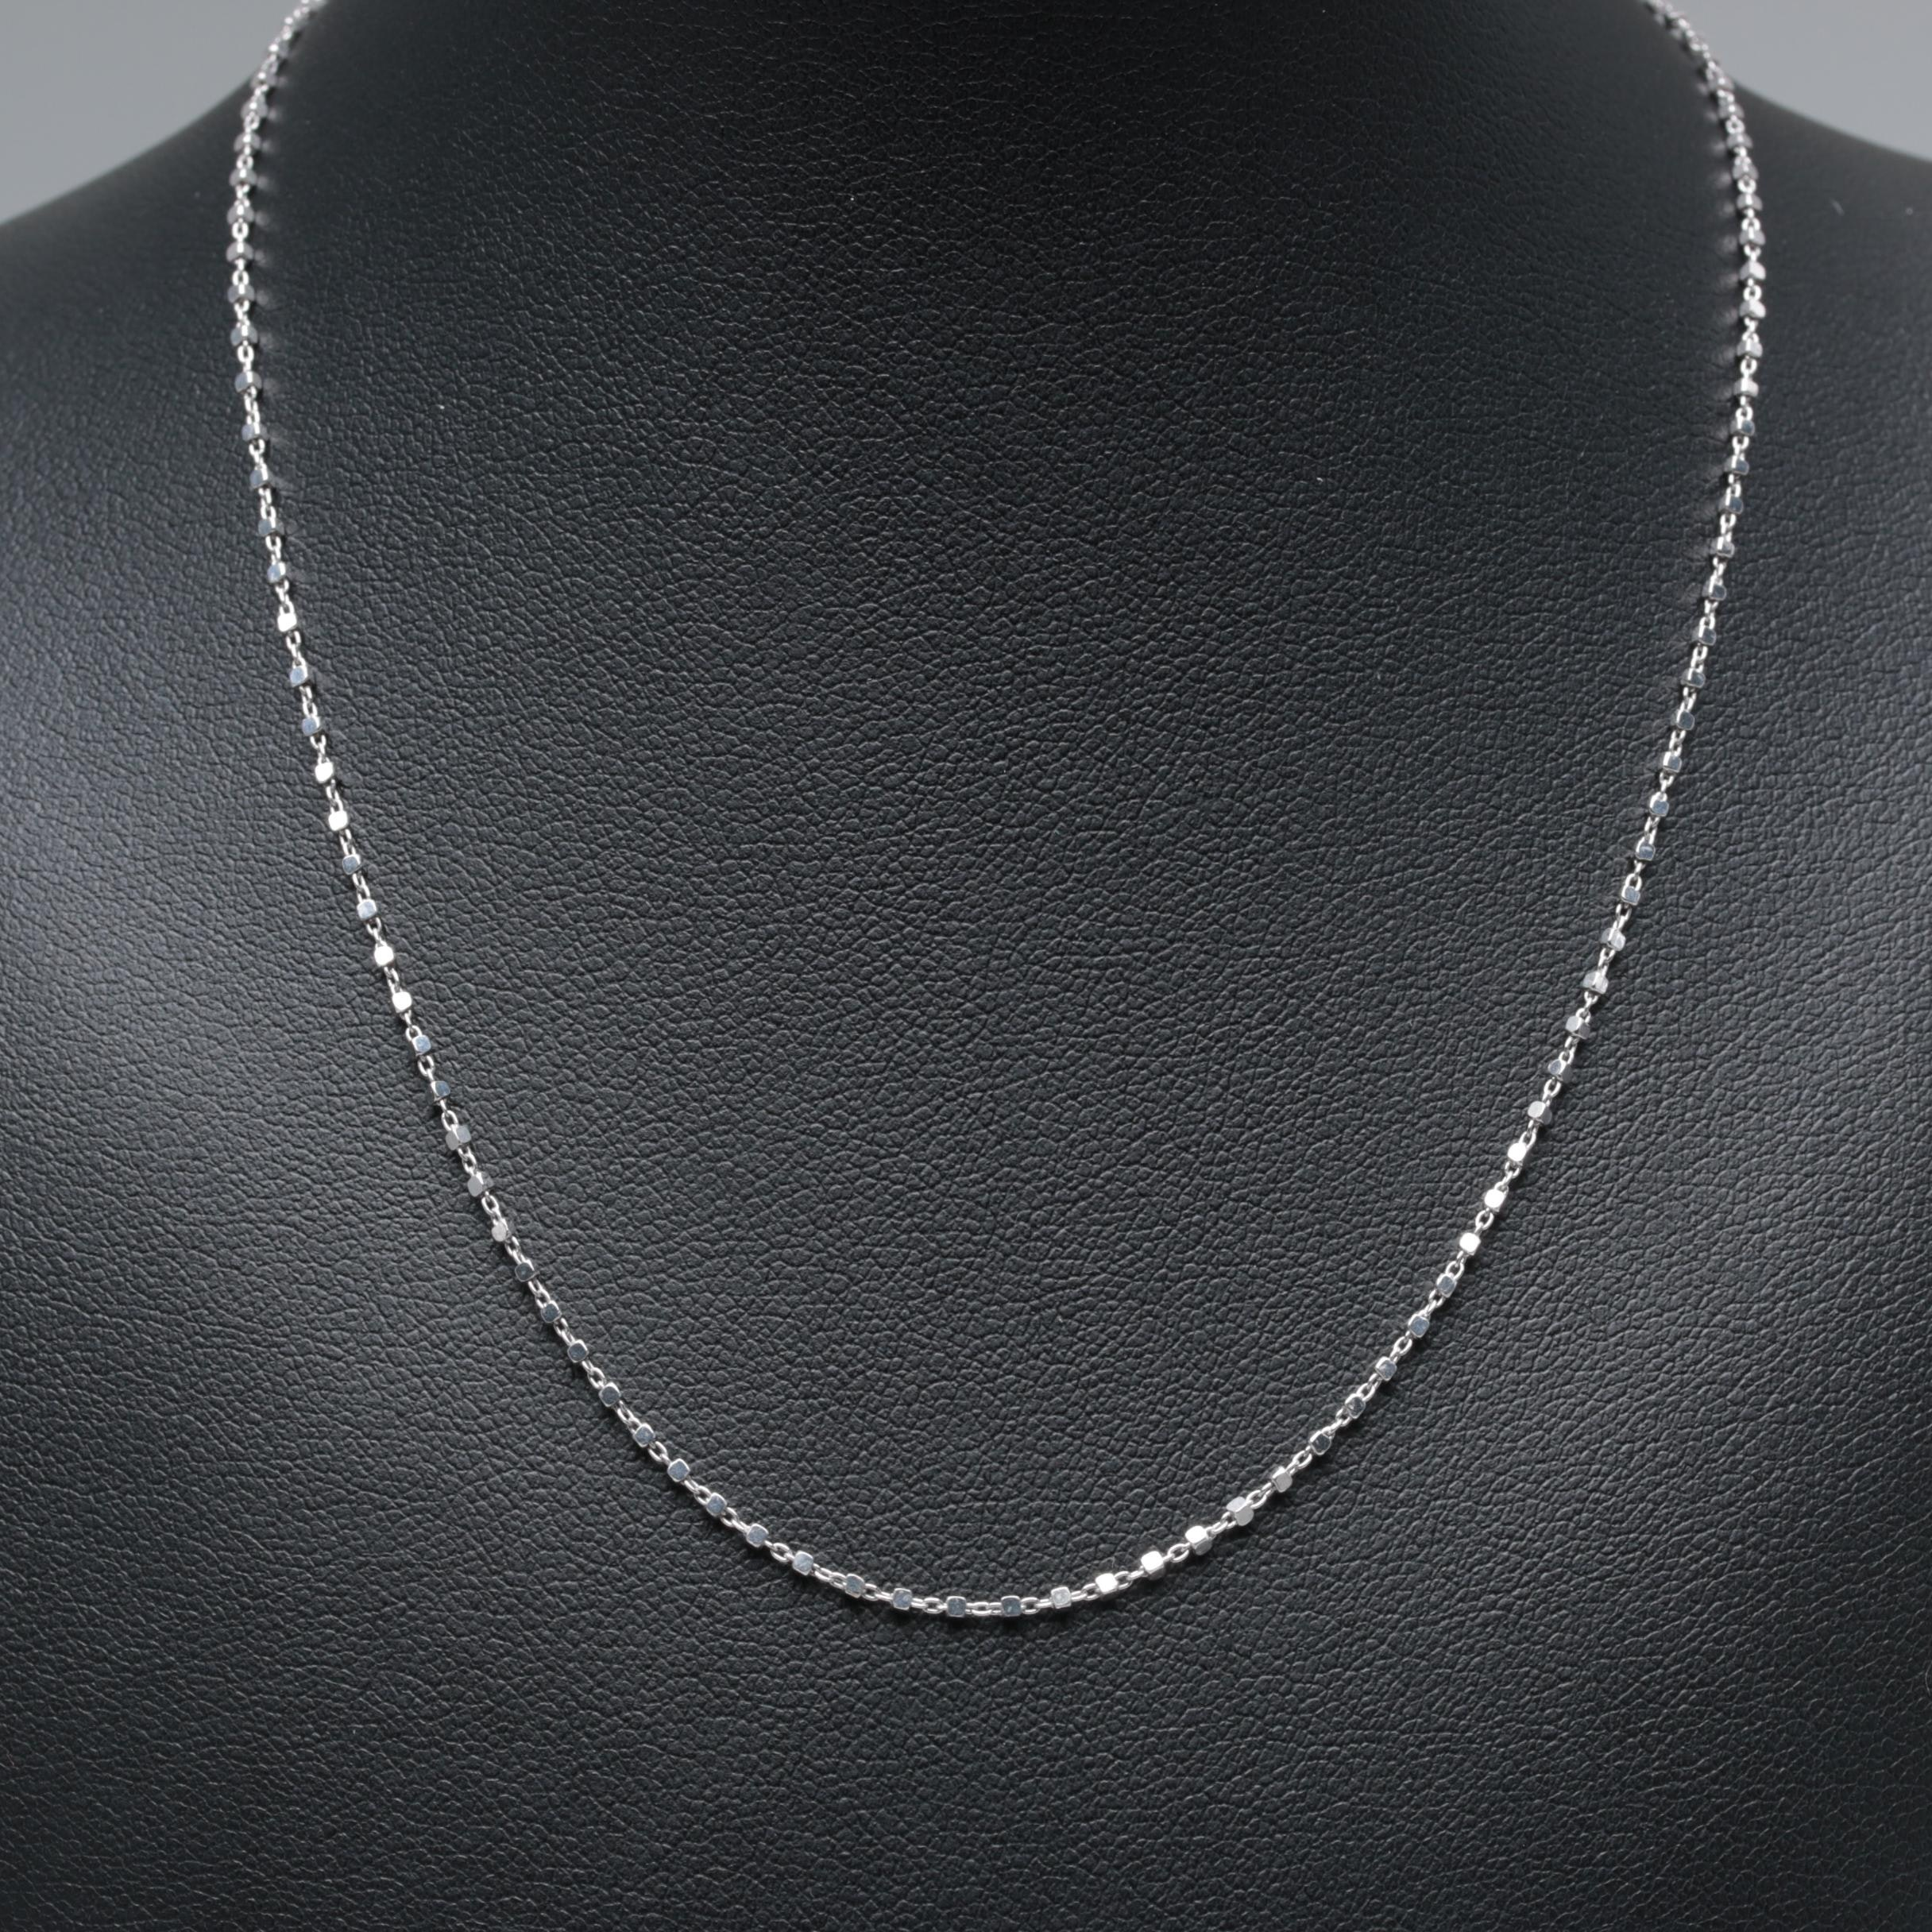 14K White Gold Fancy Link Chain Necklace